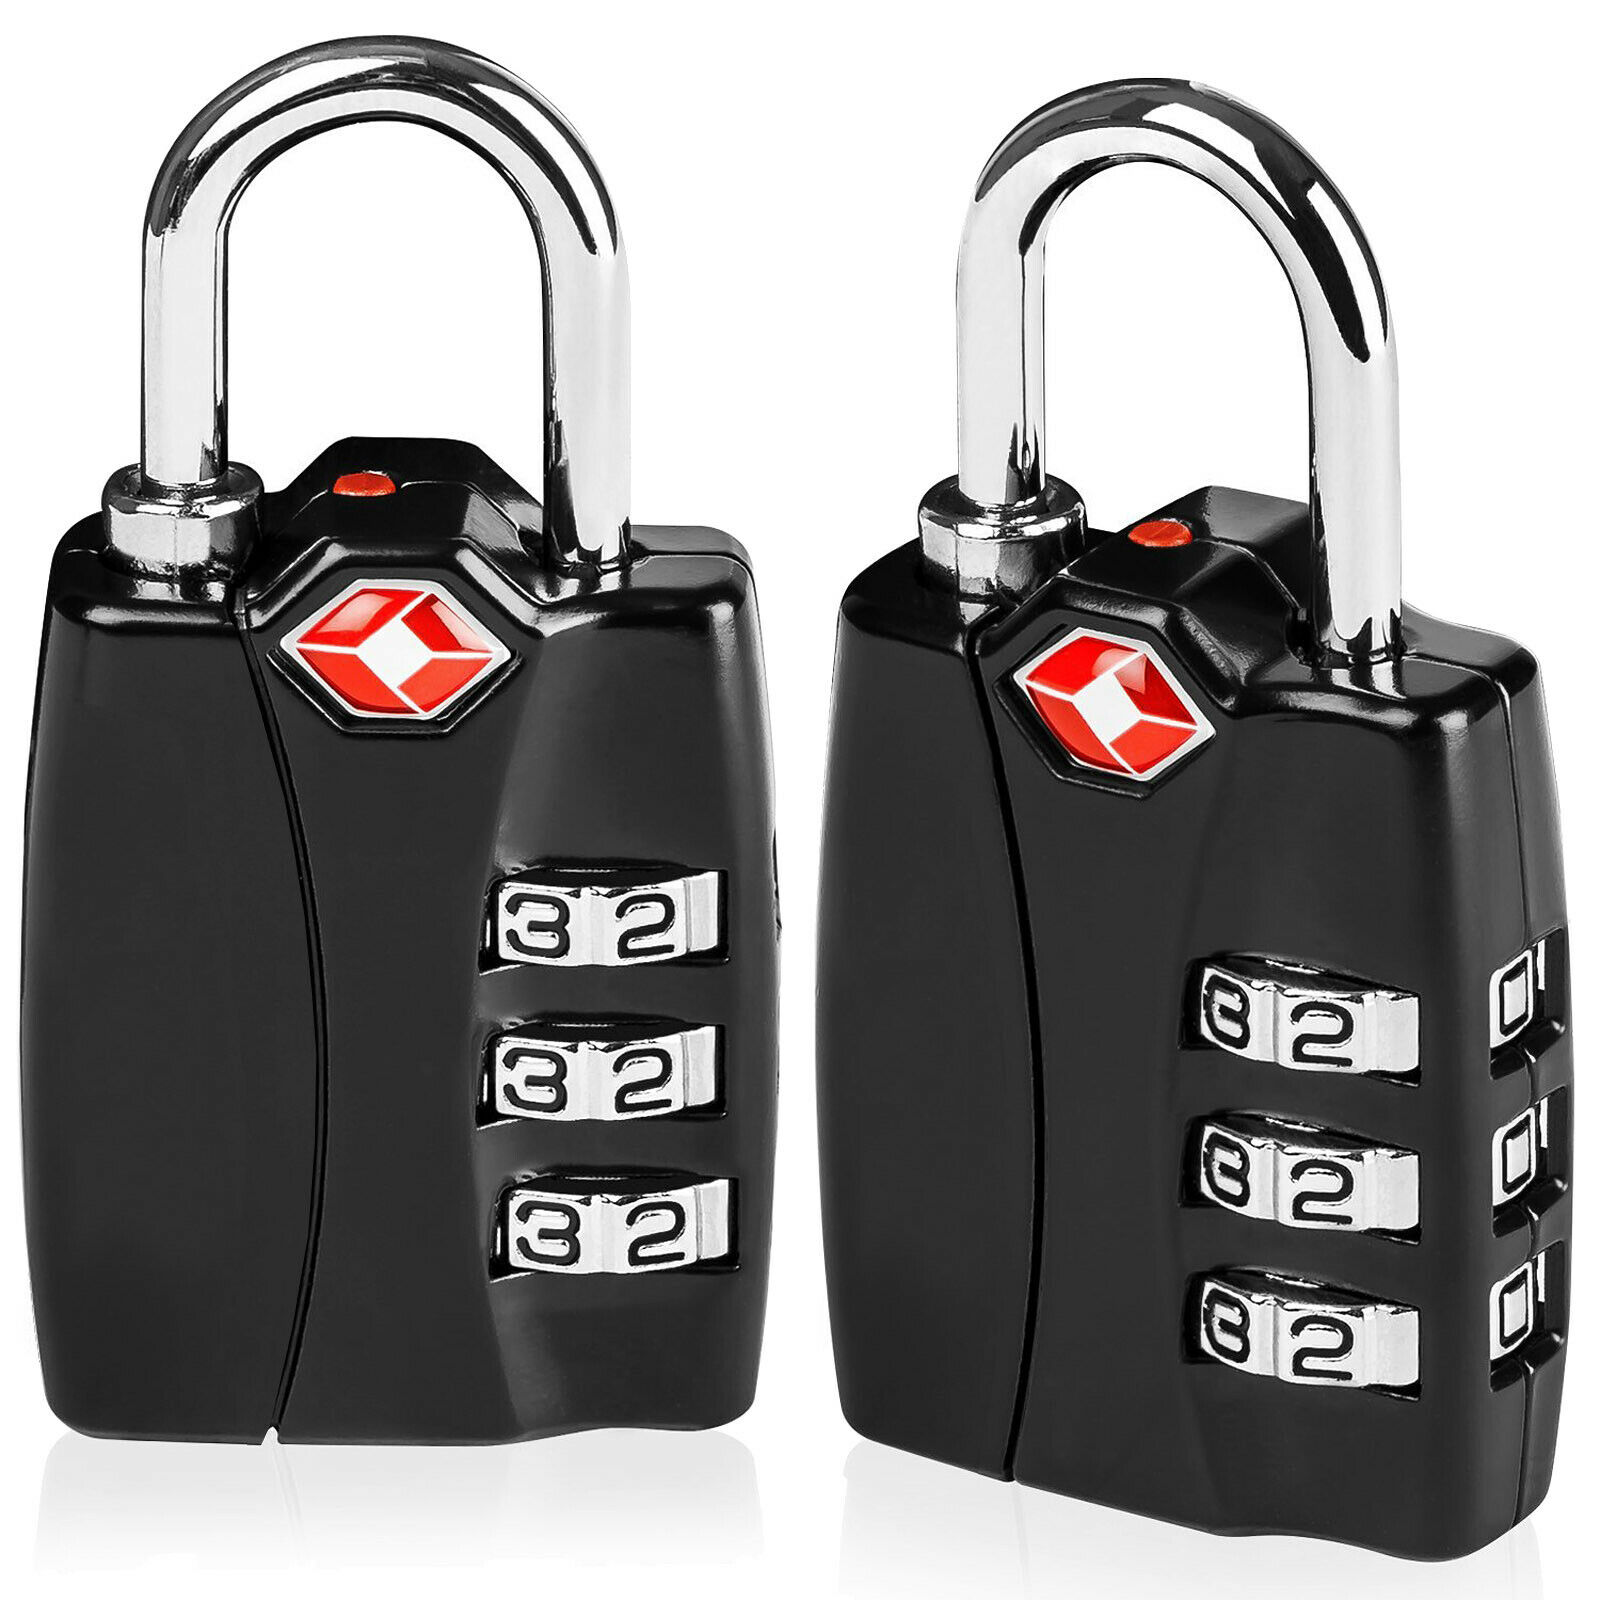 TSA Approved Resettable Lock 3 Digit Combination Suitcase Travel Luggage Padlock - $10.44